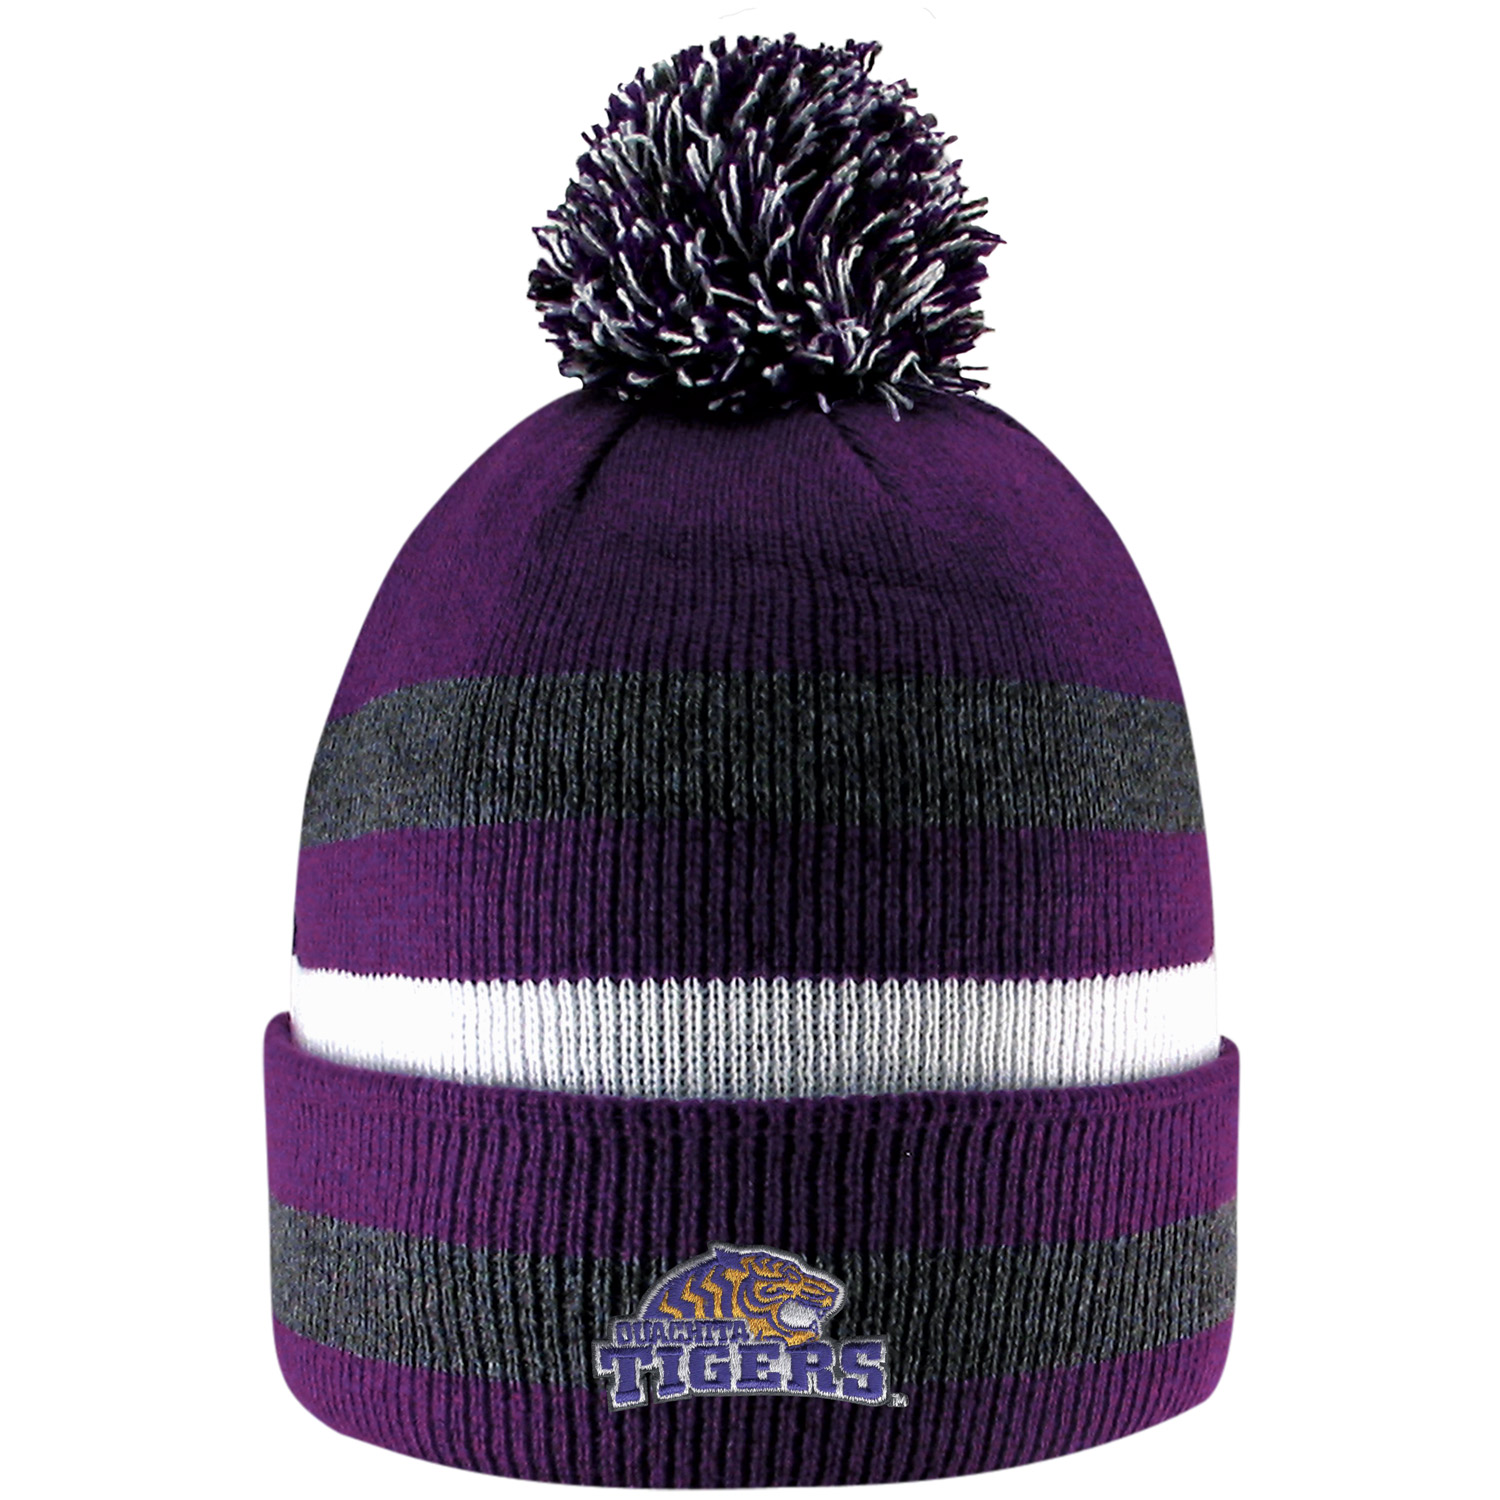 OUACHITA TIGERS PRIMETIME STRIPED KNIT CUFF POM BEANIE